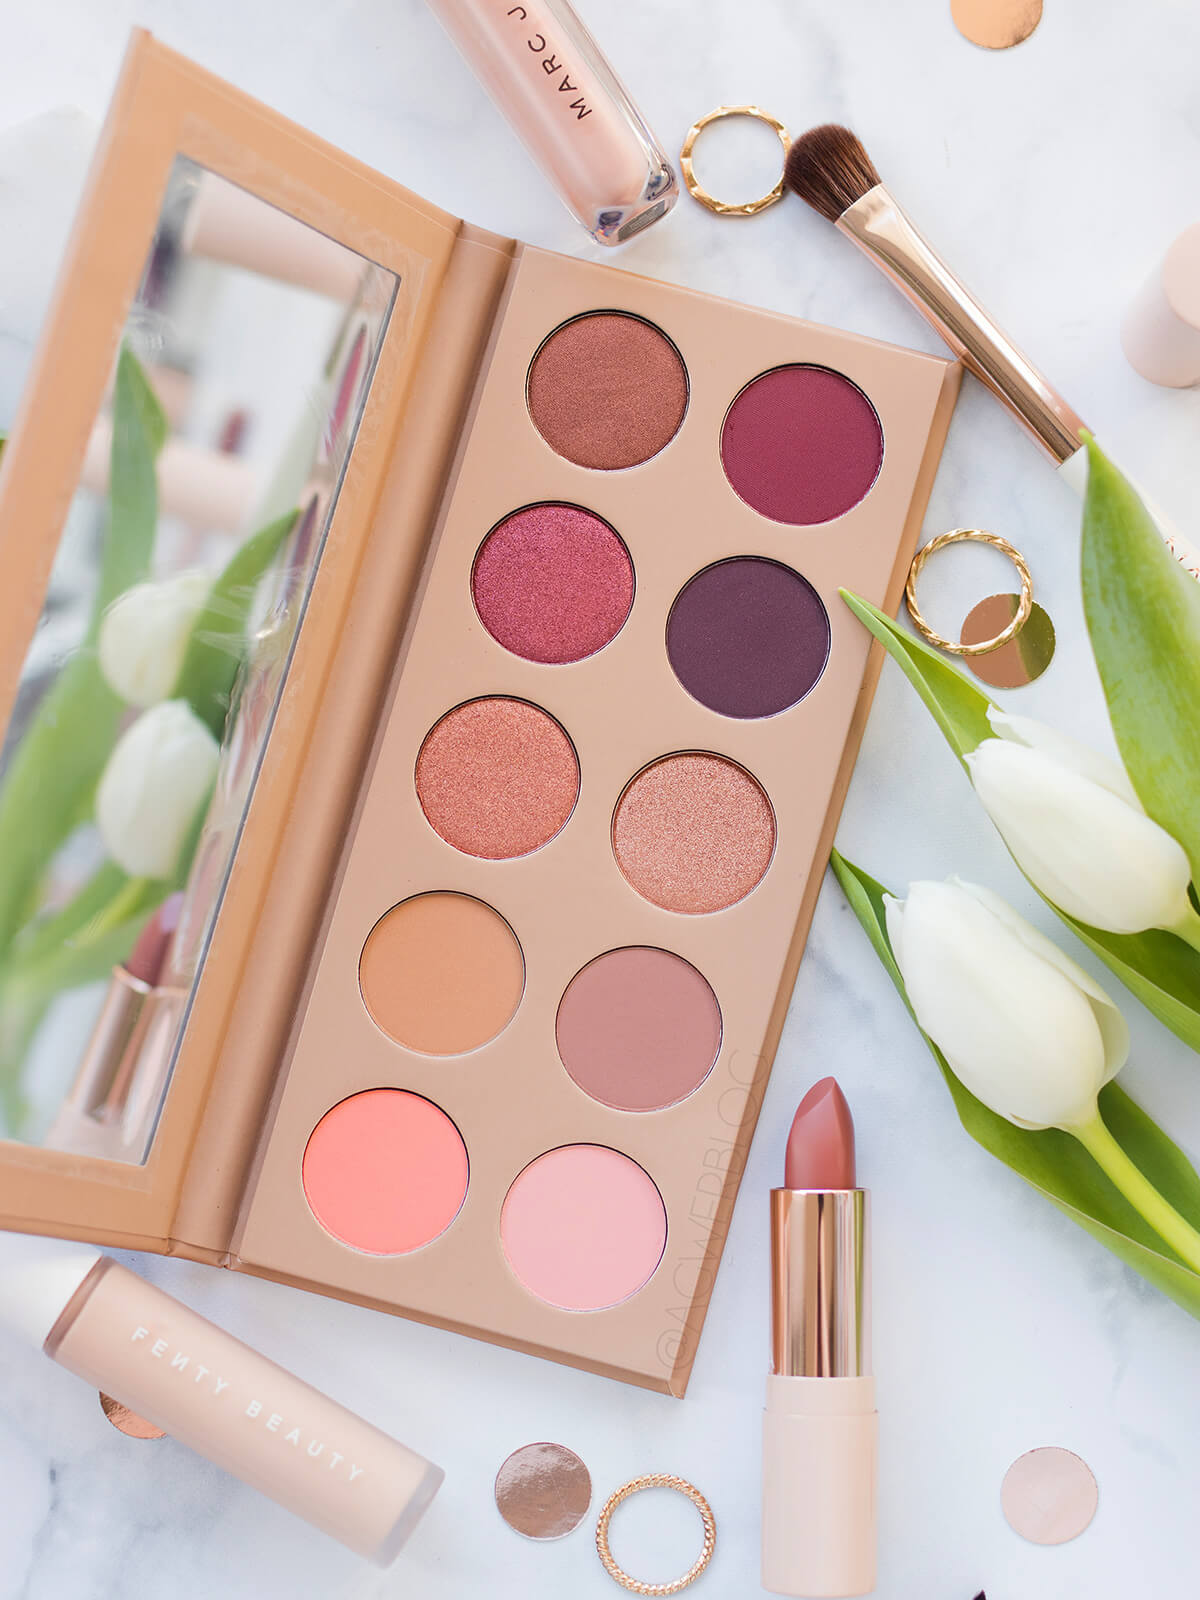 KKW Beauty Classic Blossom swatches